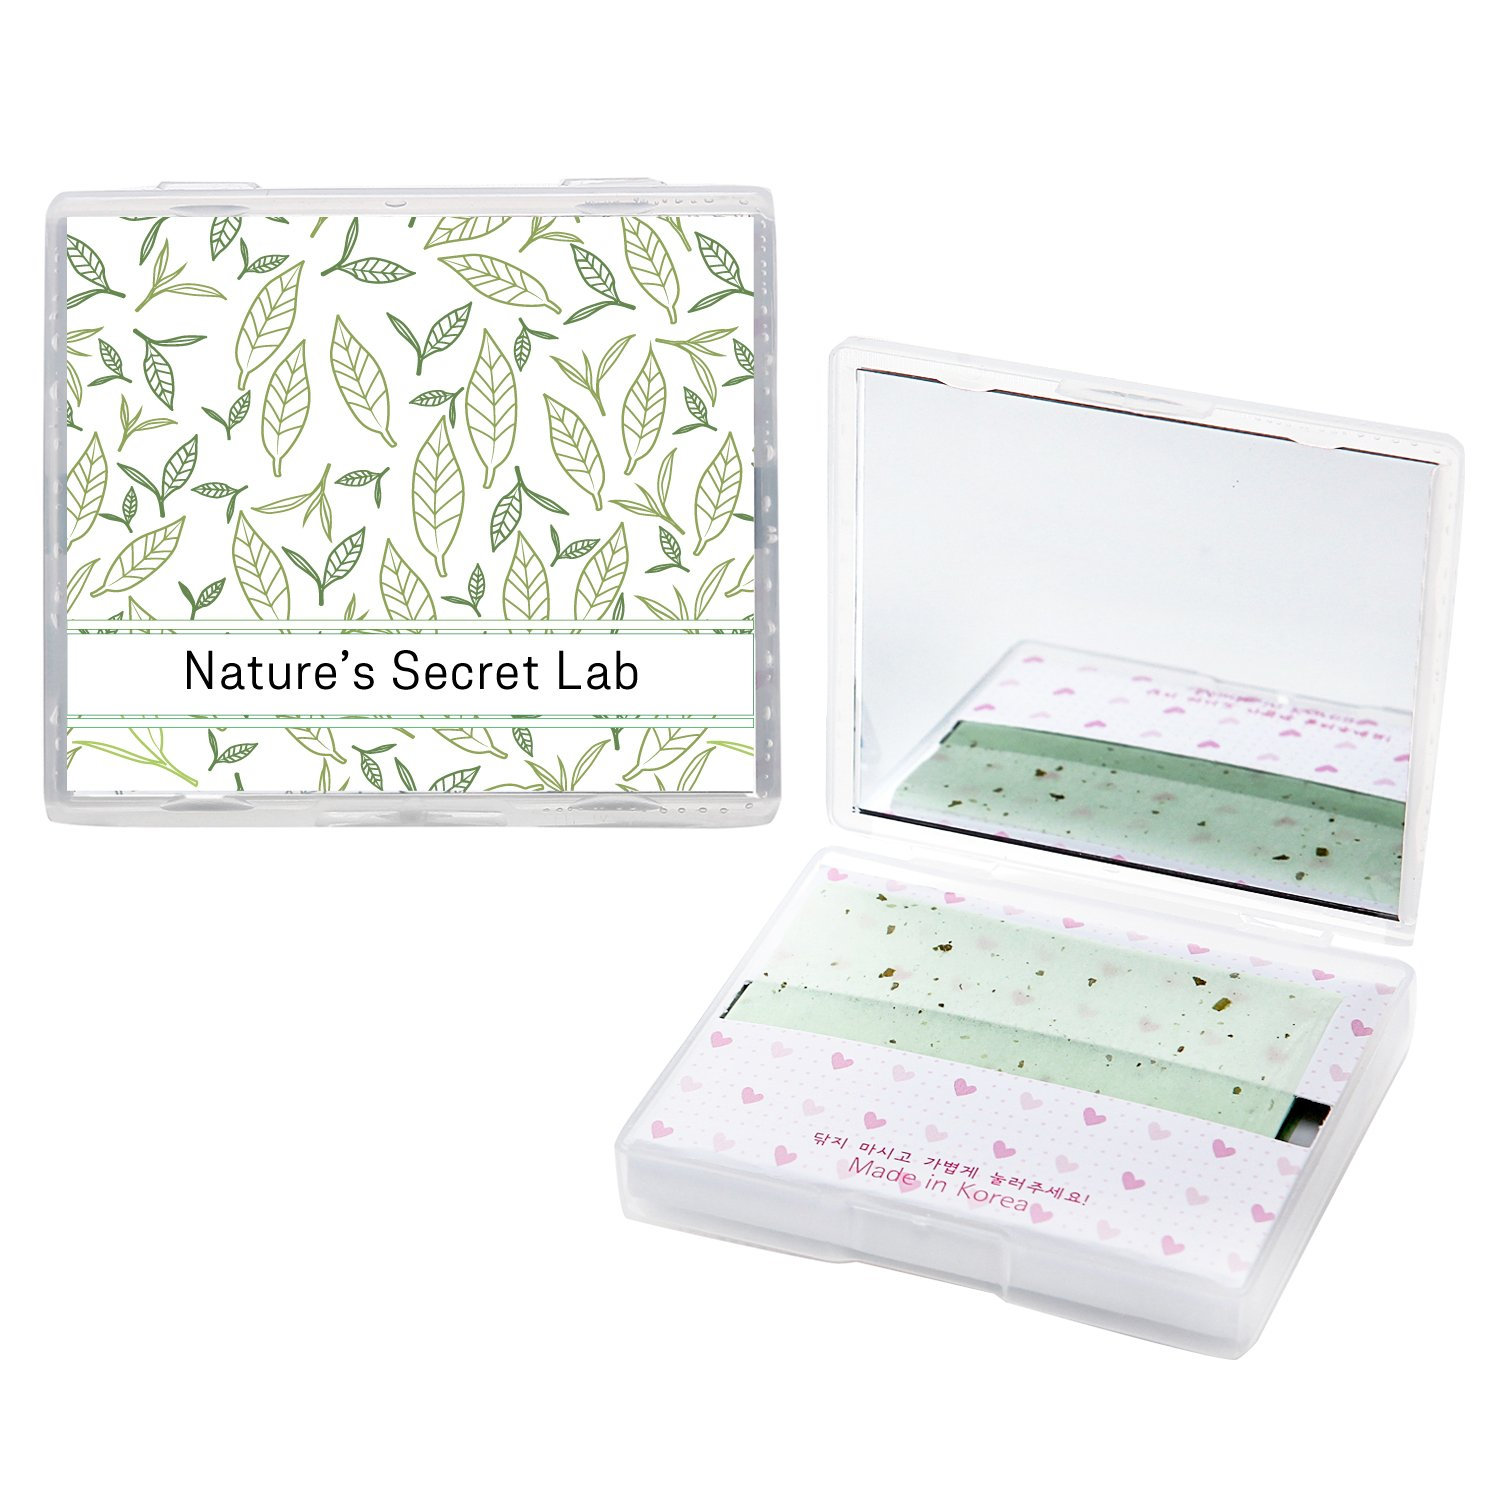 [200 Counts + Mirror Case] Face Oil Blotting Paper Sheets with Makeup Mirror - Green Tea Oil Absorbing Sheets made in Japan Nature' s Secret Lab